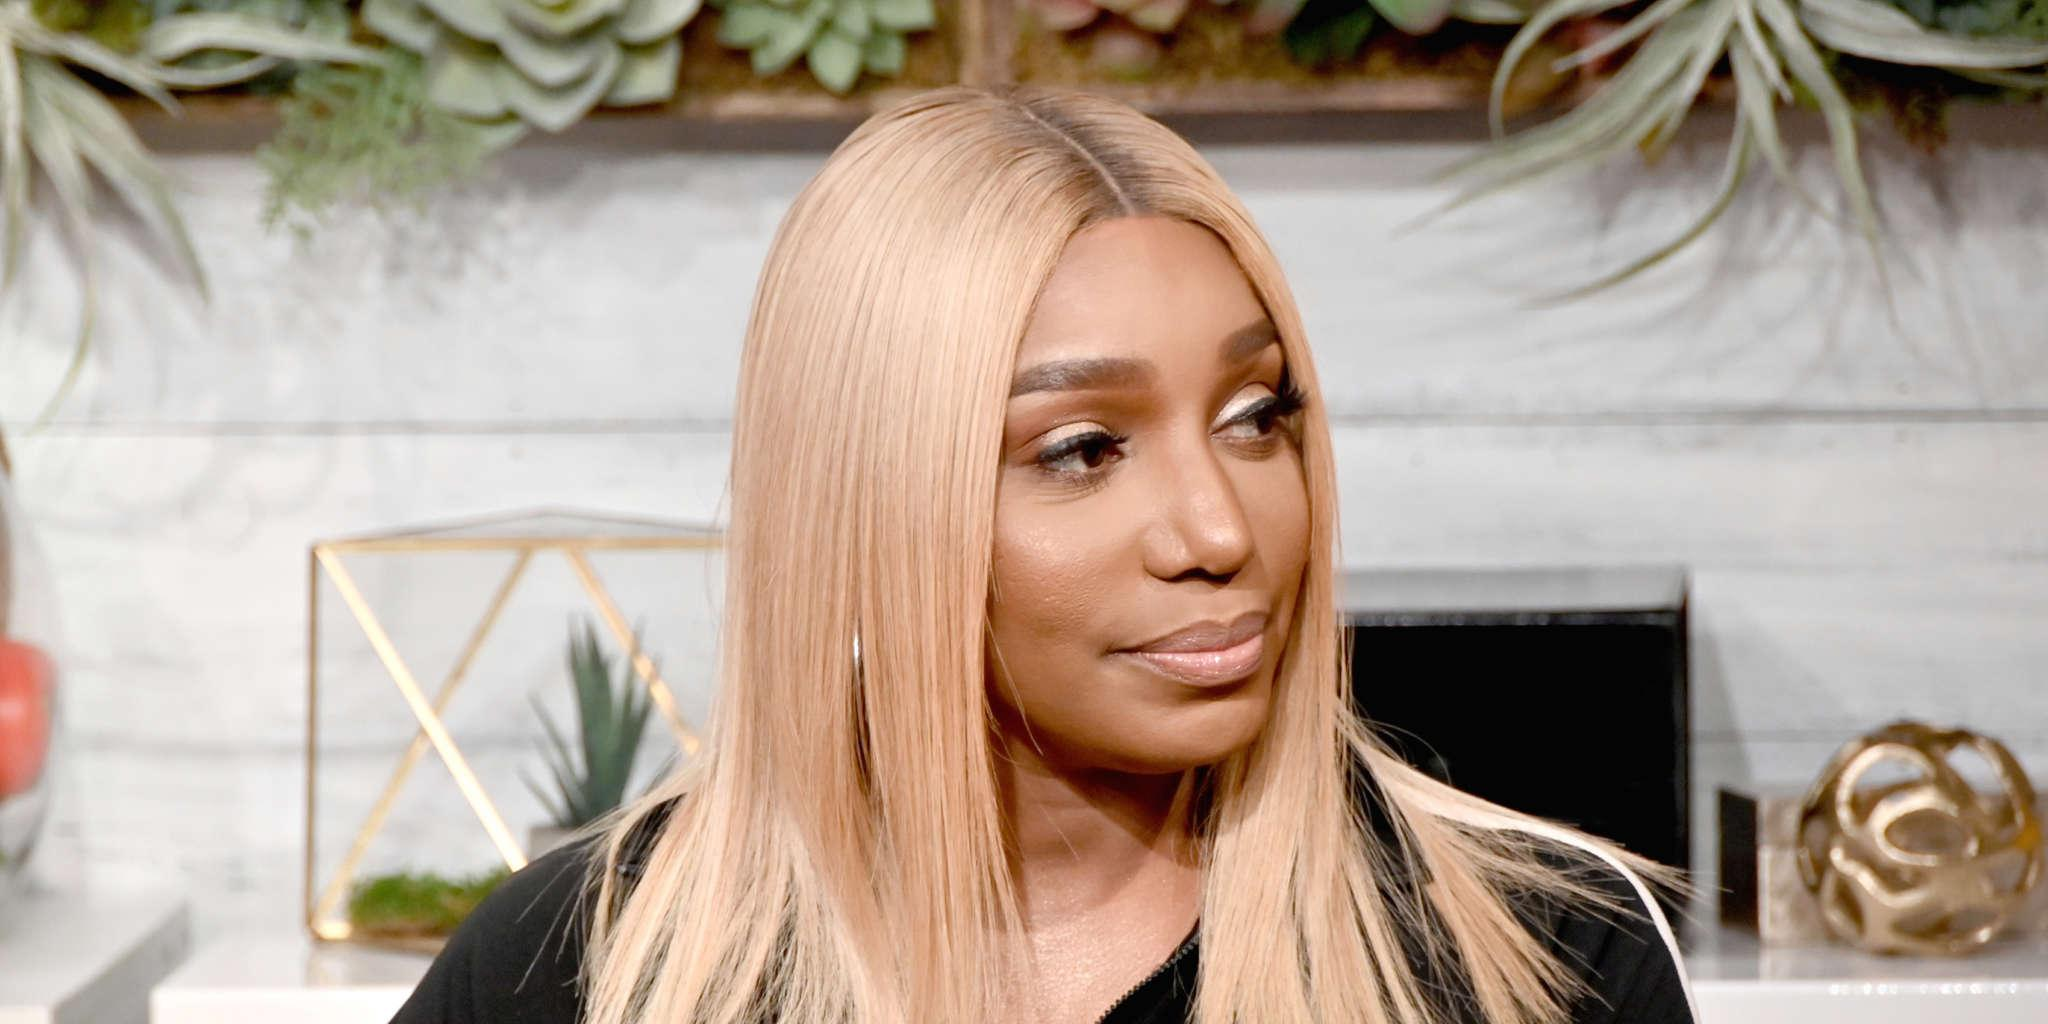 NeNe Leakes Looks Gorgeous In A Black Lace Outfit For A Friend's Birthday